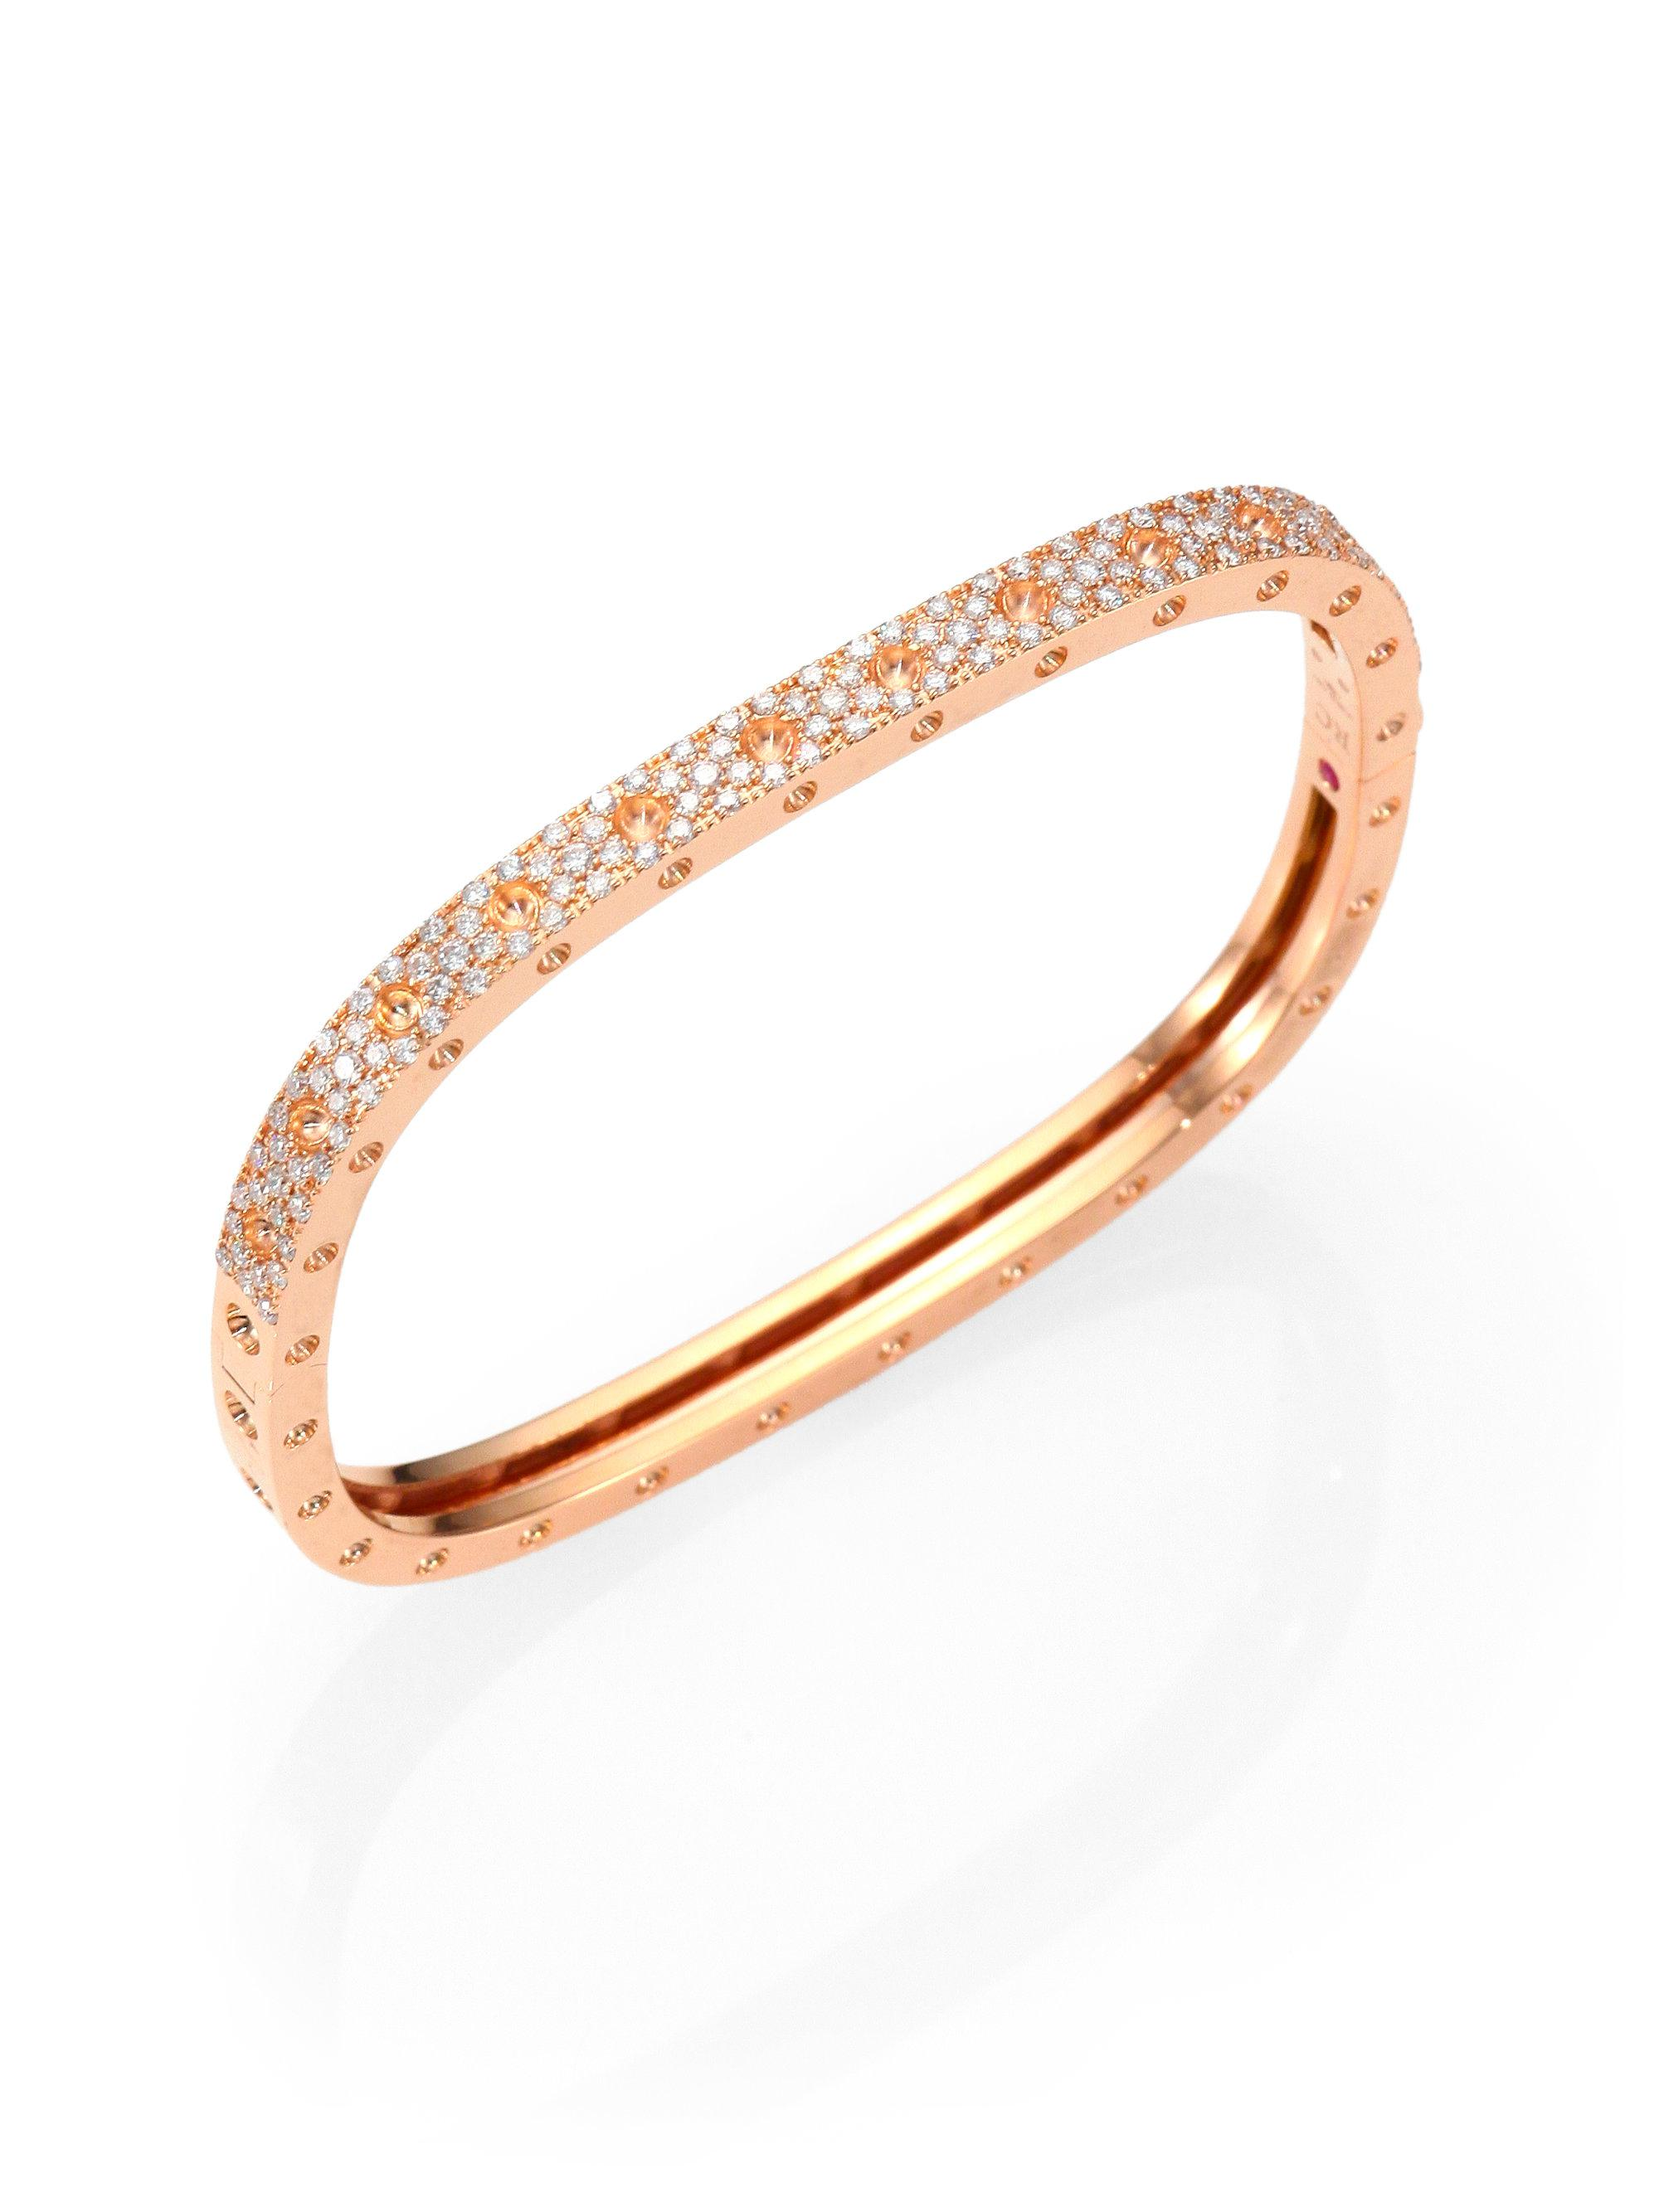 pin diamond the cosmos rose bangle bracelet moon are on sphere a sun loveliest of bangles members captured gold and stars in